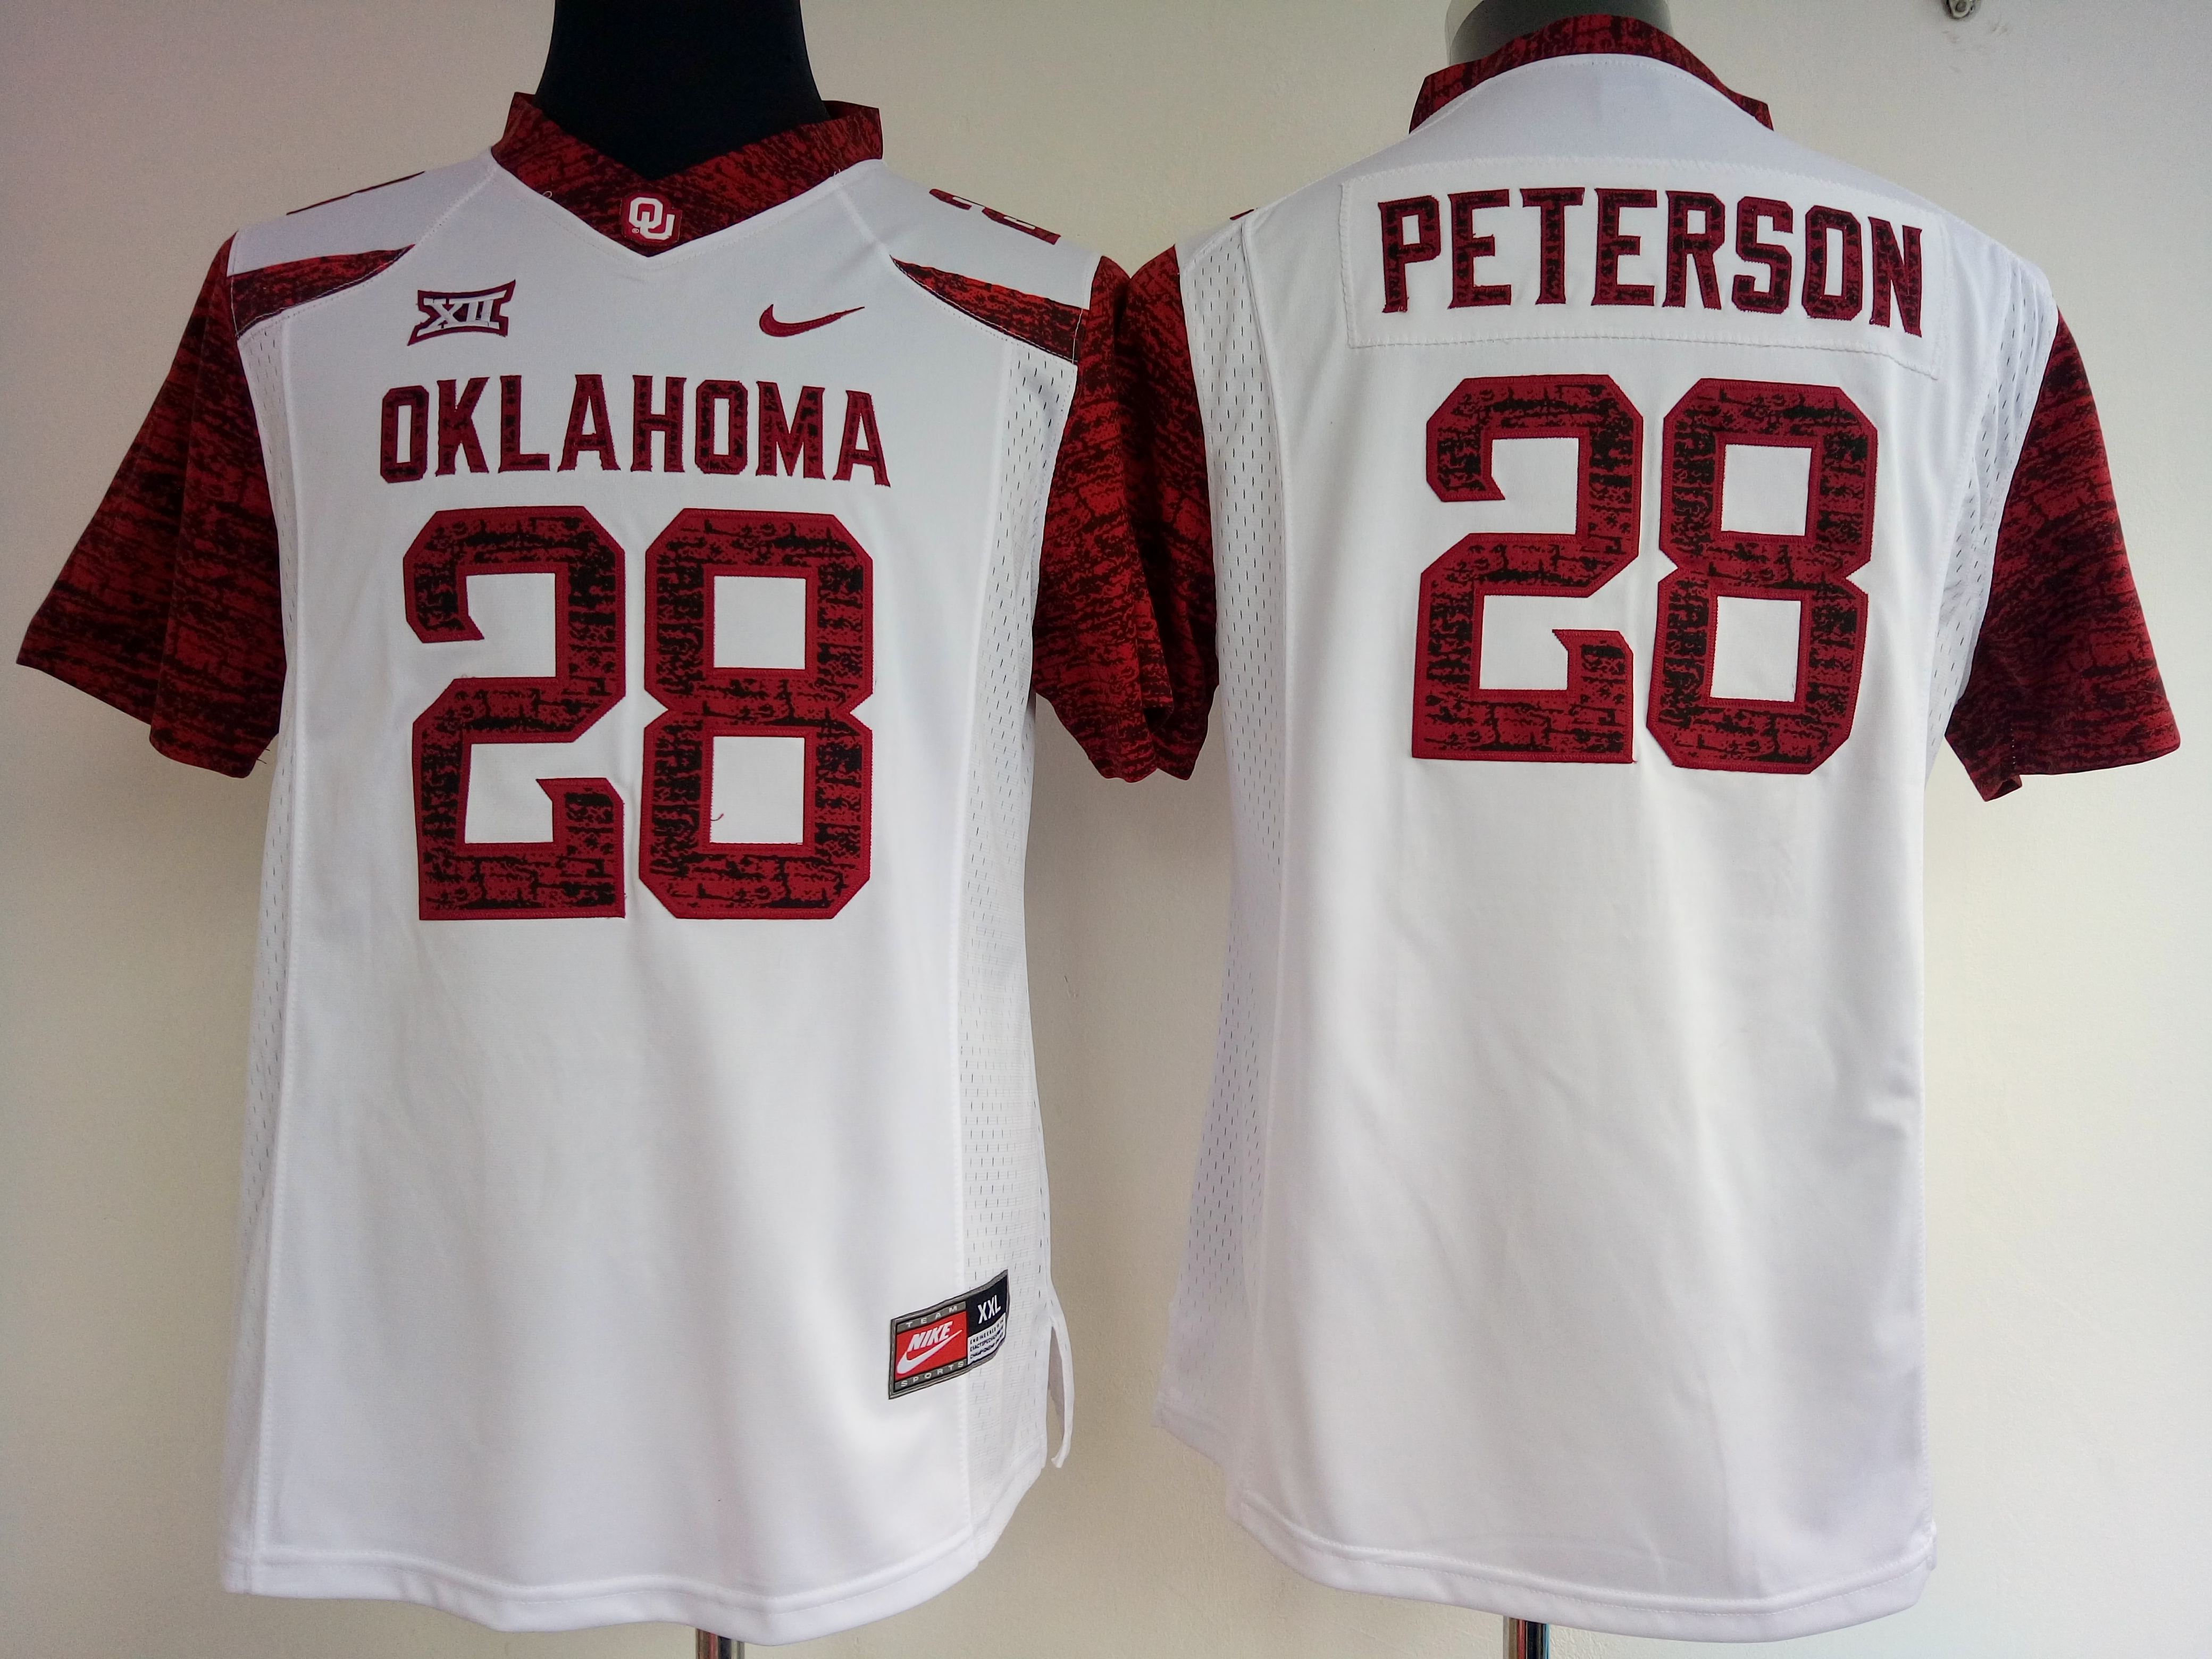 NCAA Womens Oklahoma Sooners White Limited 28 peterson jerseys